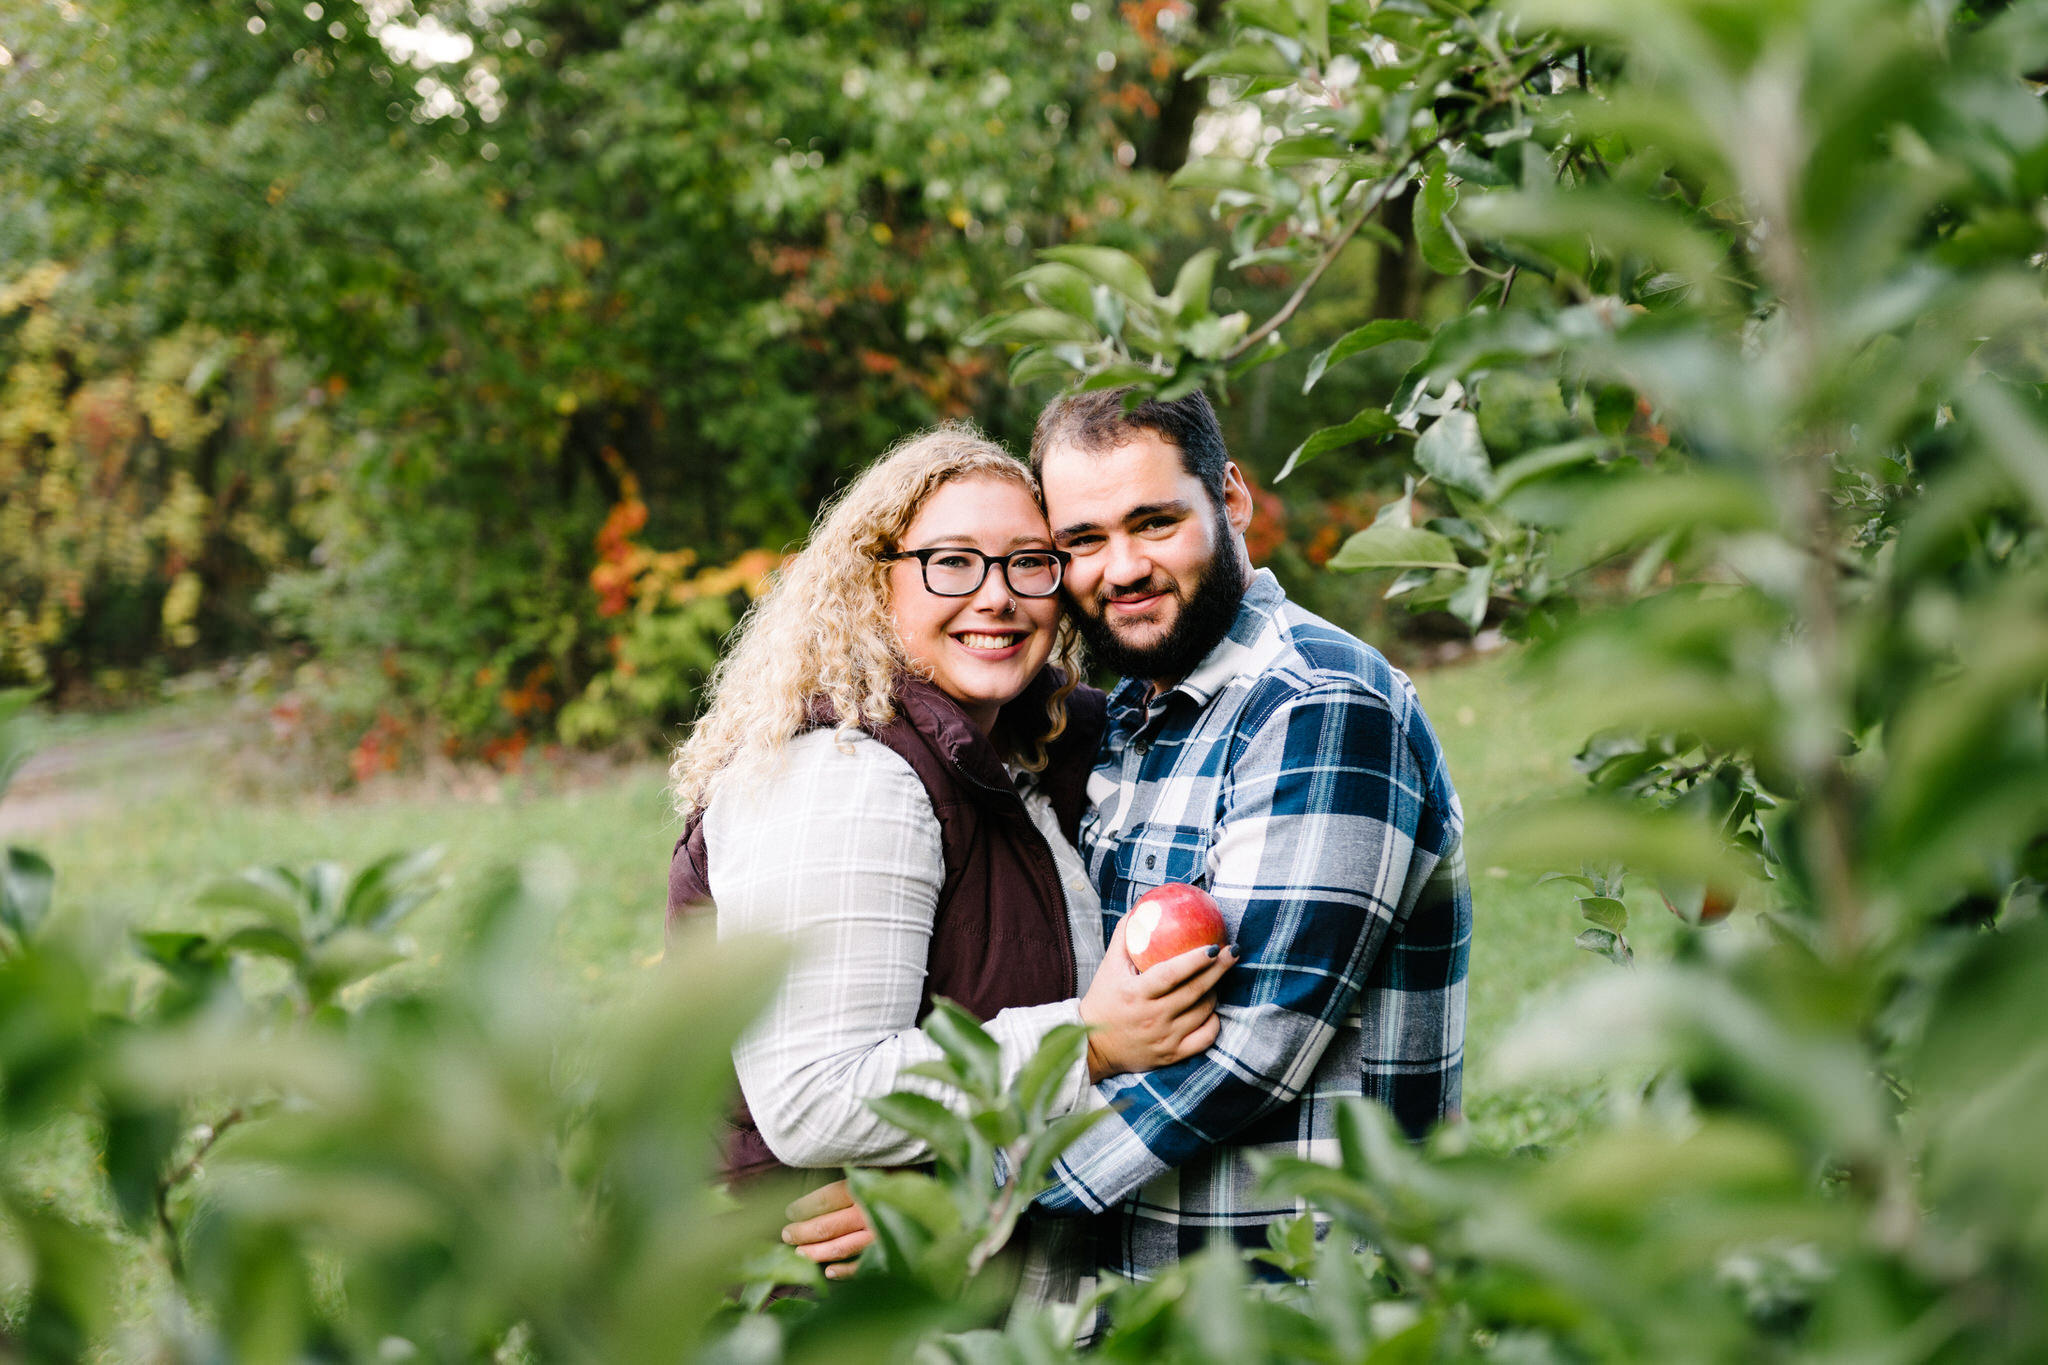 007-rempel-photography-wedding-chicago-family-oak-park-austin-brooklyn-engagement-grand-rapids-apple-orchard-robinettes.jpg